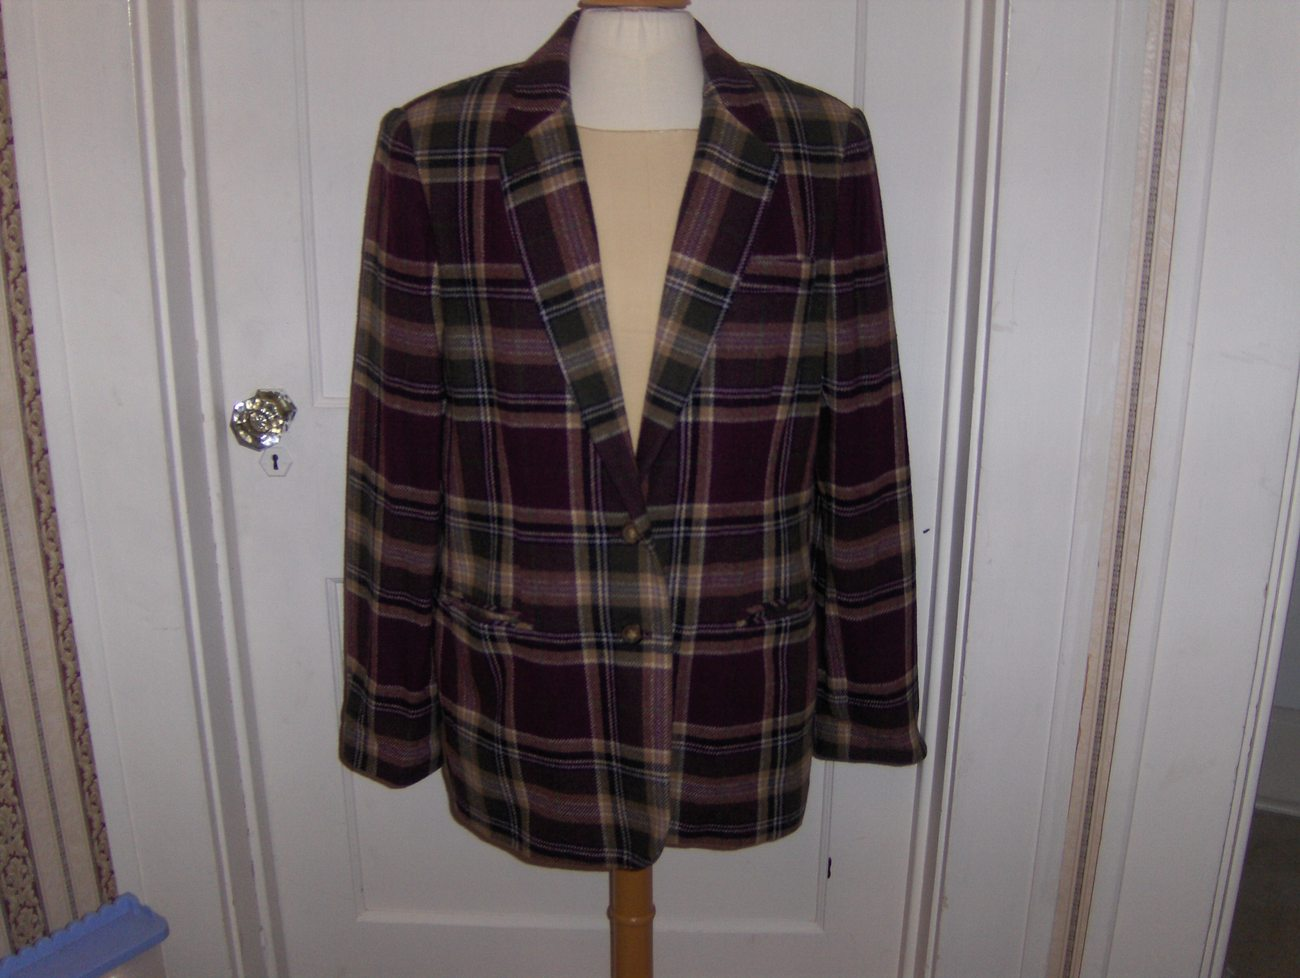 White Stag Womens Purple,Cream and Green Plaid Wool Blazer Size 12